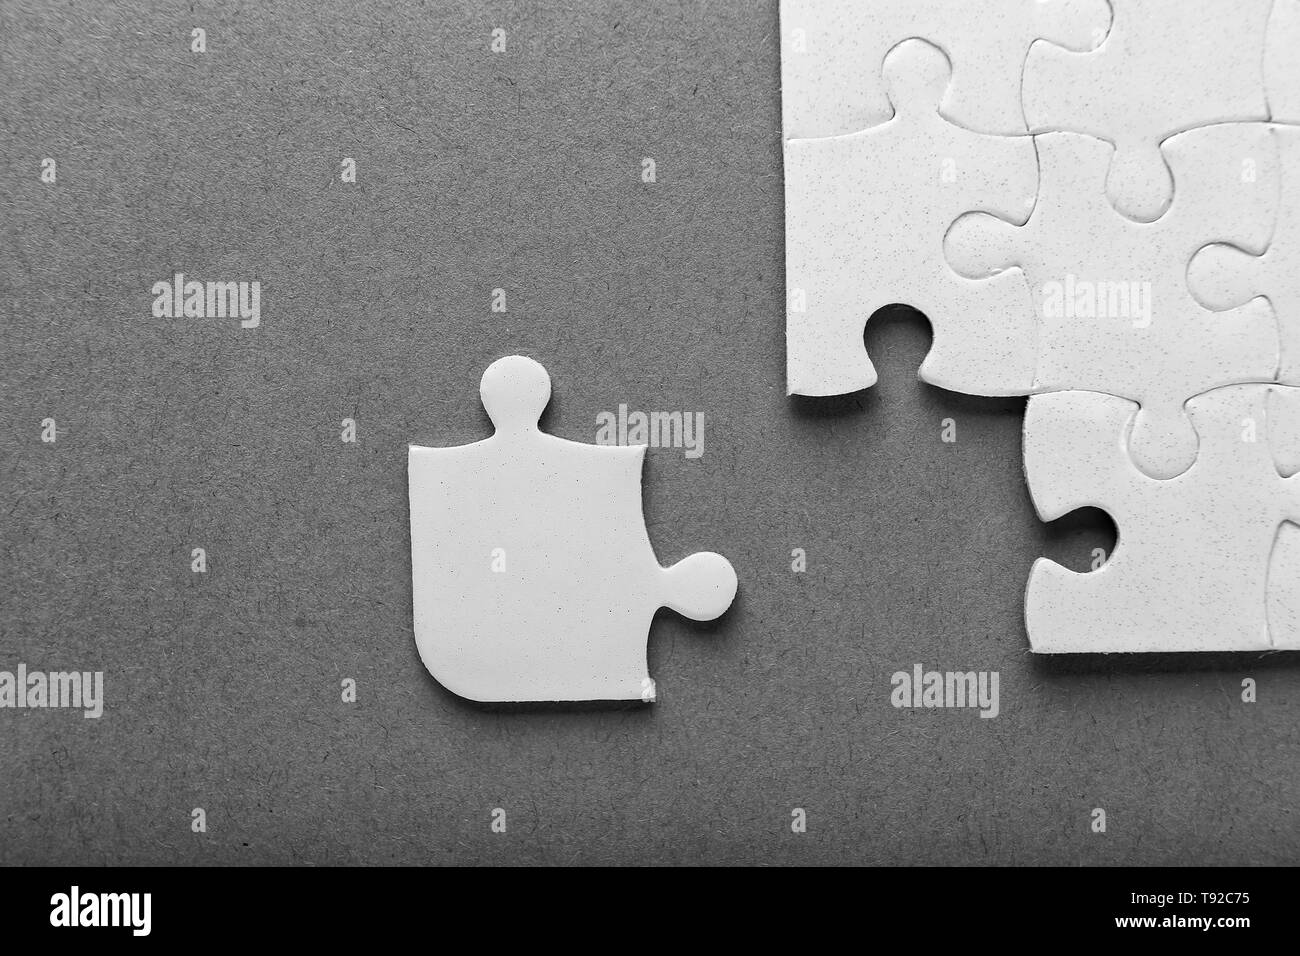 Incomplete jigsaw puzzle on grey background - Stock Image